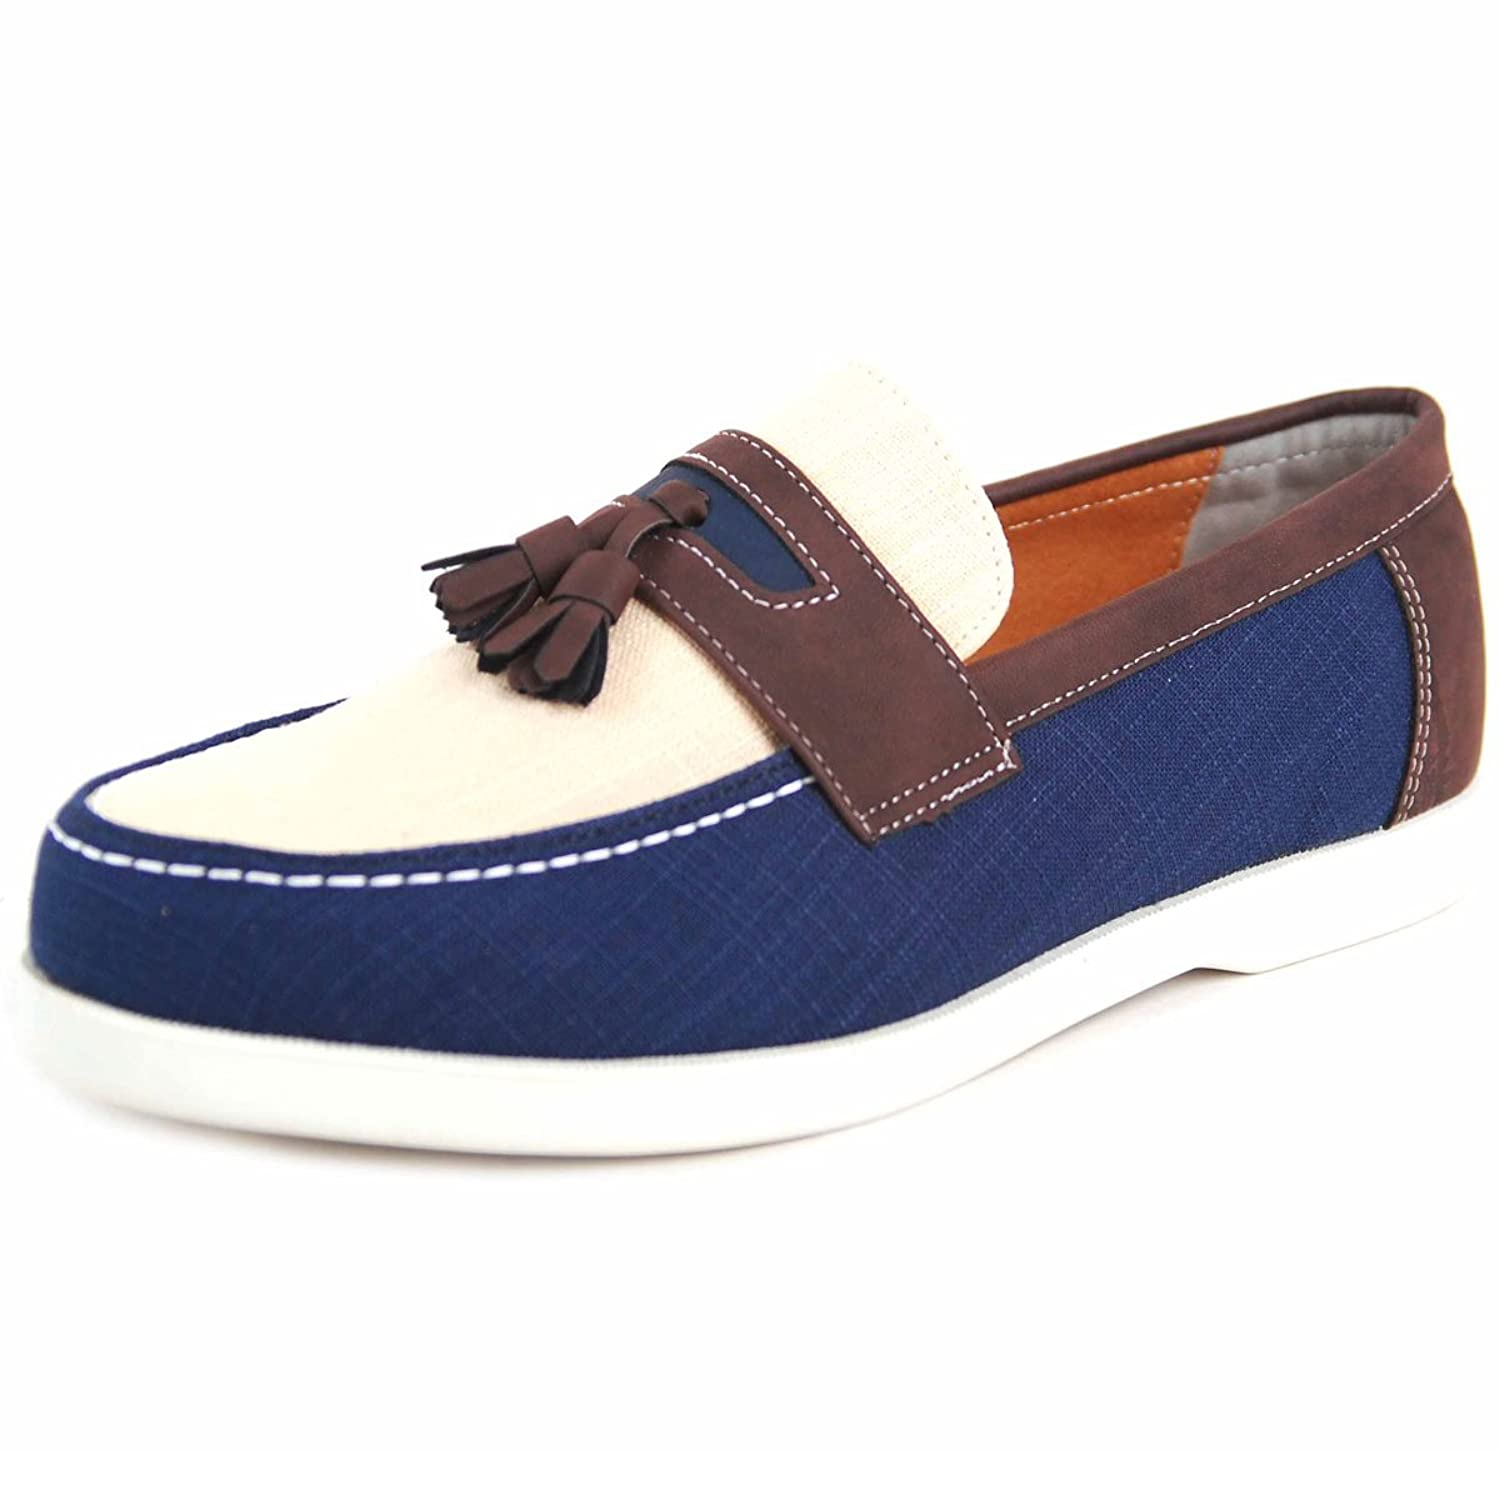 Activity Design Men's Oxford Casual Tessel Loafer Shoes Bh050_3 (9.5, navy)